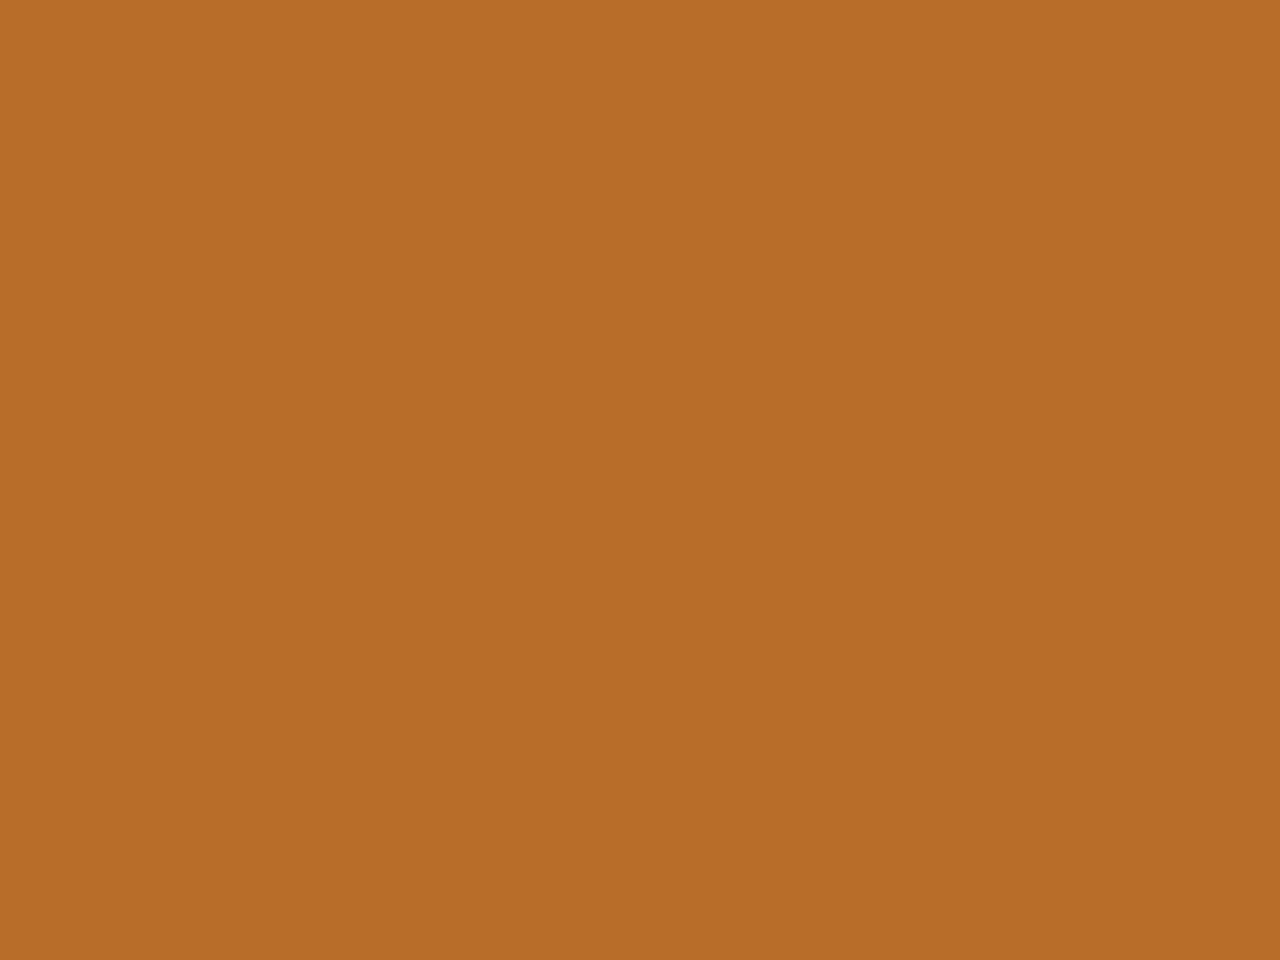 1280x960 Liver Dogs Solid Color Background